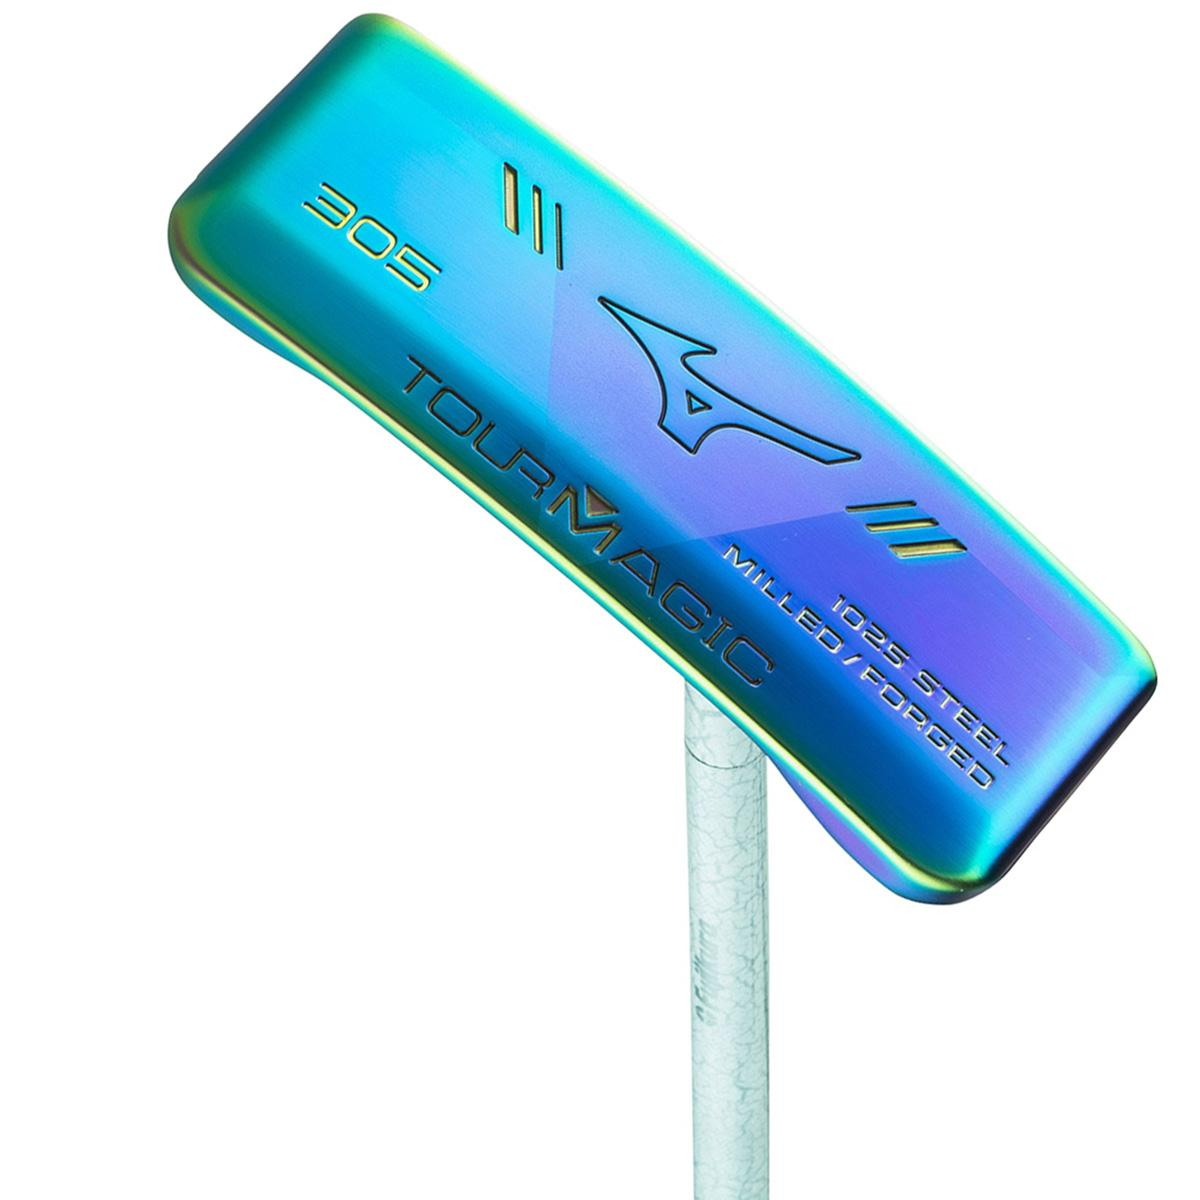 ミズノ MIZUNO TOUR MAGIC 305 パター オーロラIP仕上げ FUJIKURA MC Putter